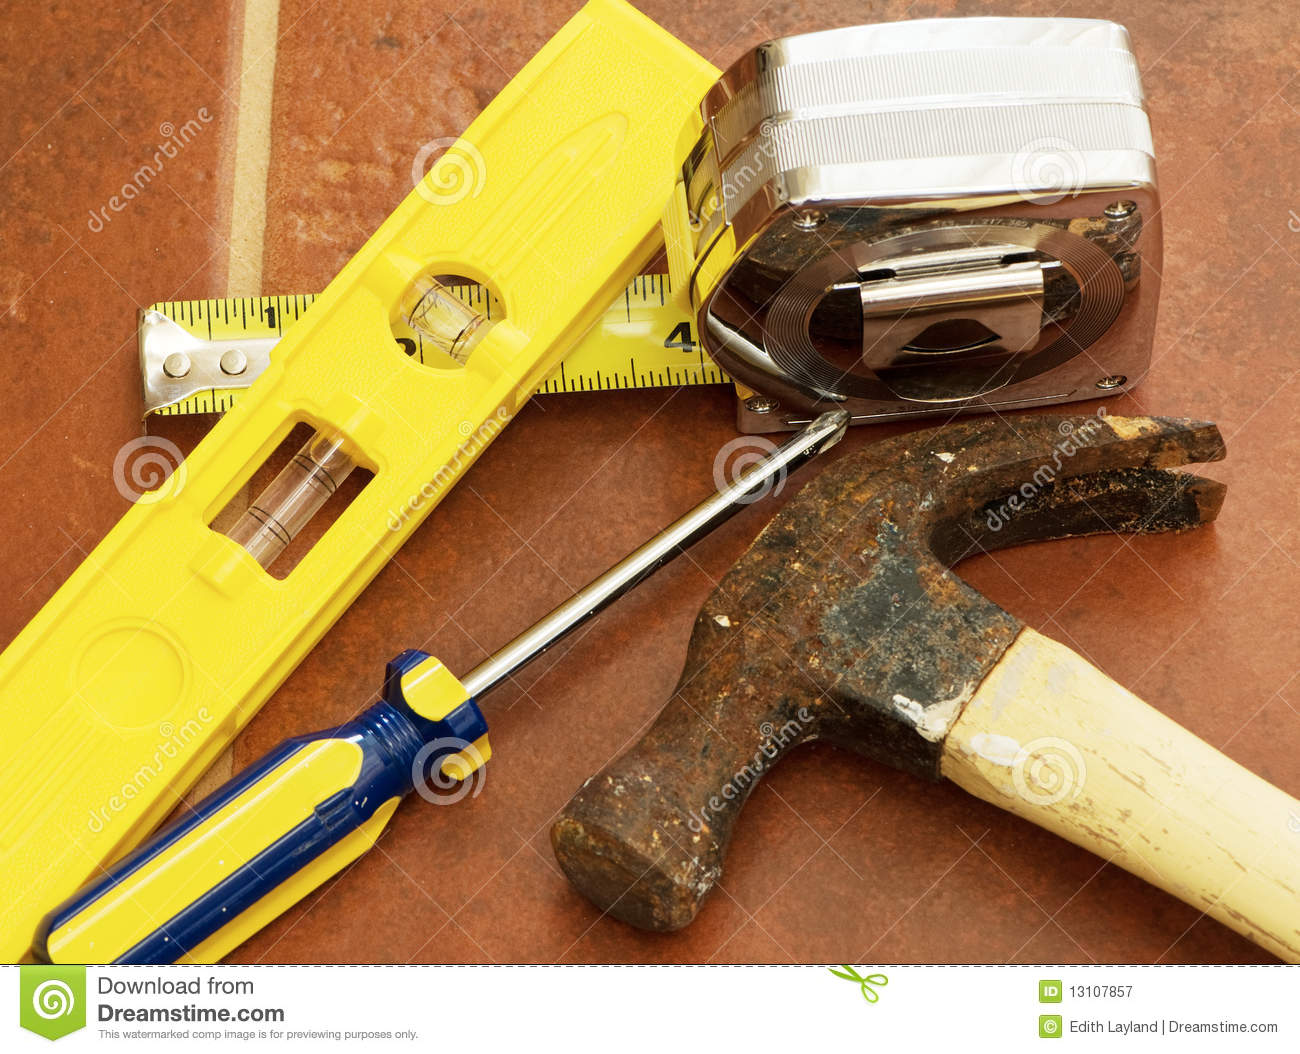 Countertop Measuring Tool Tools For Home Improvement Royalty Free Stock Photography